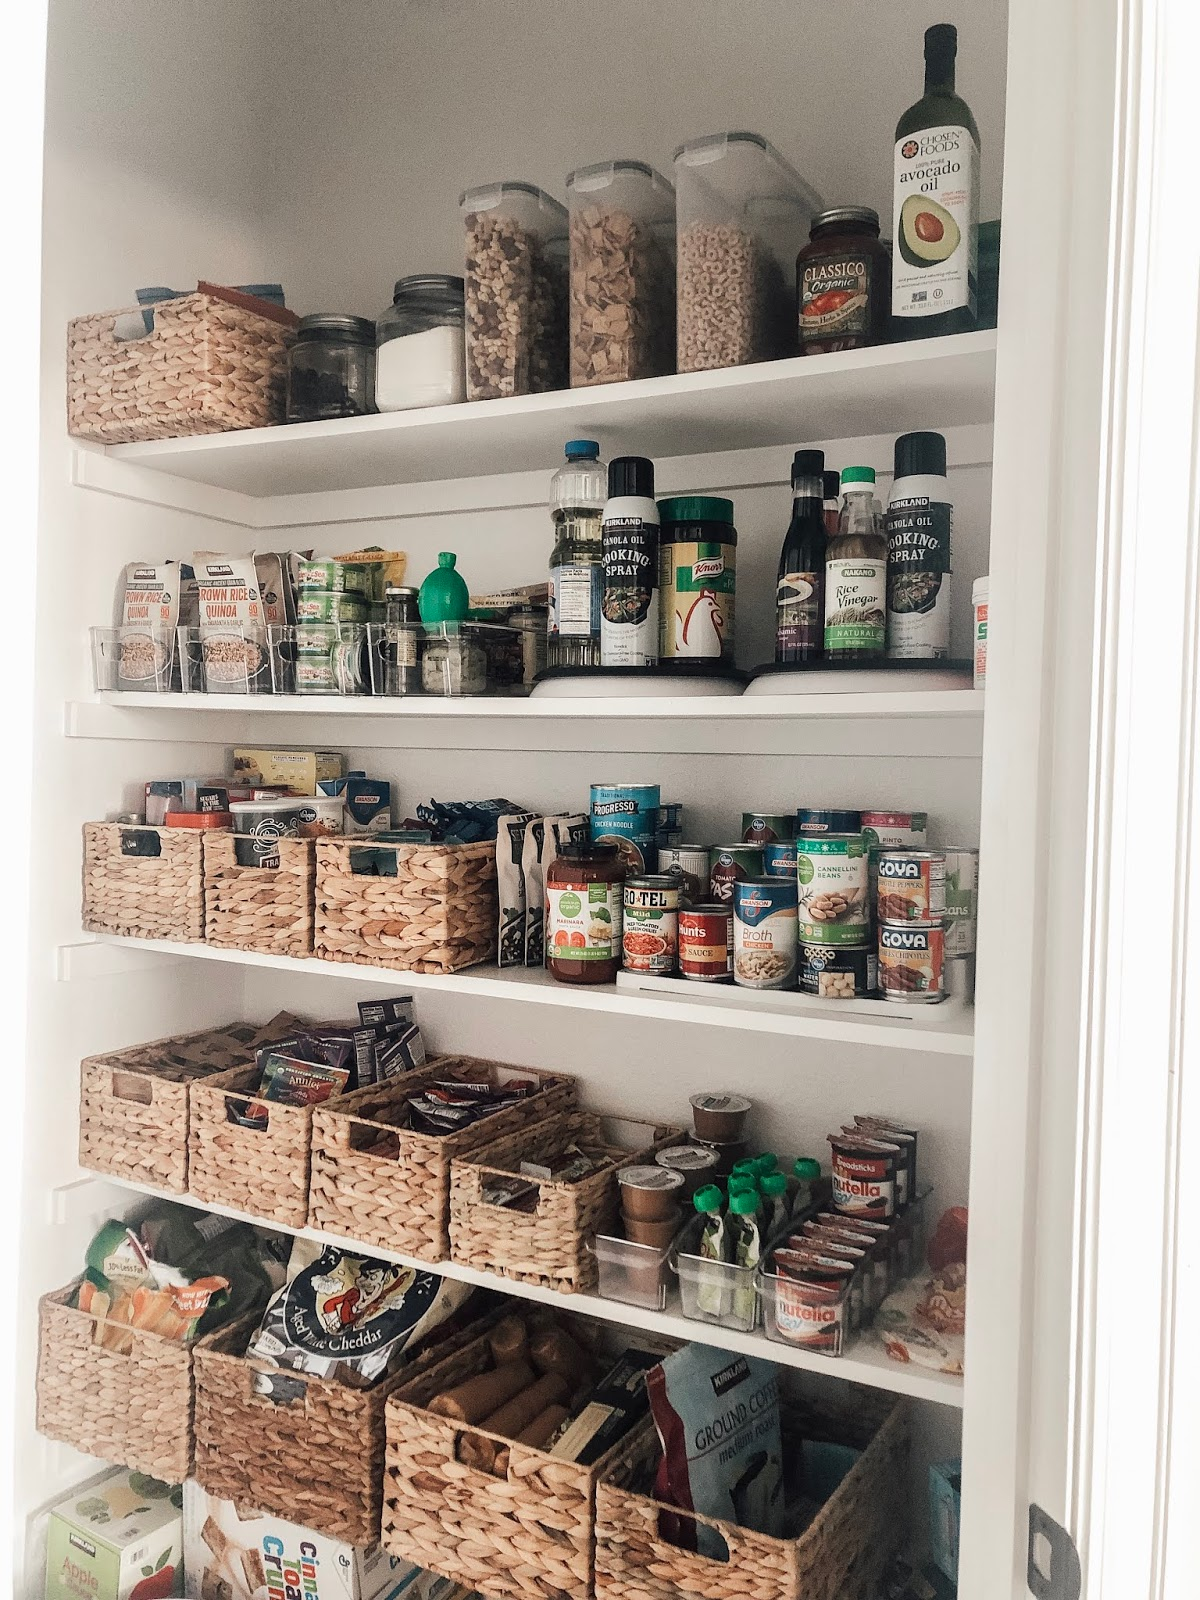 Easy pantry organization with woven baskets and clear containers